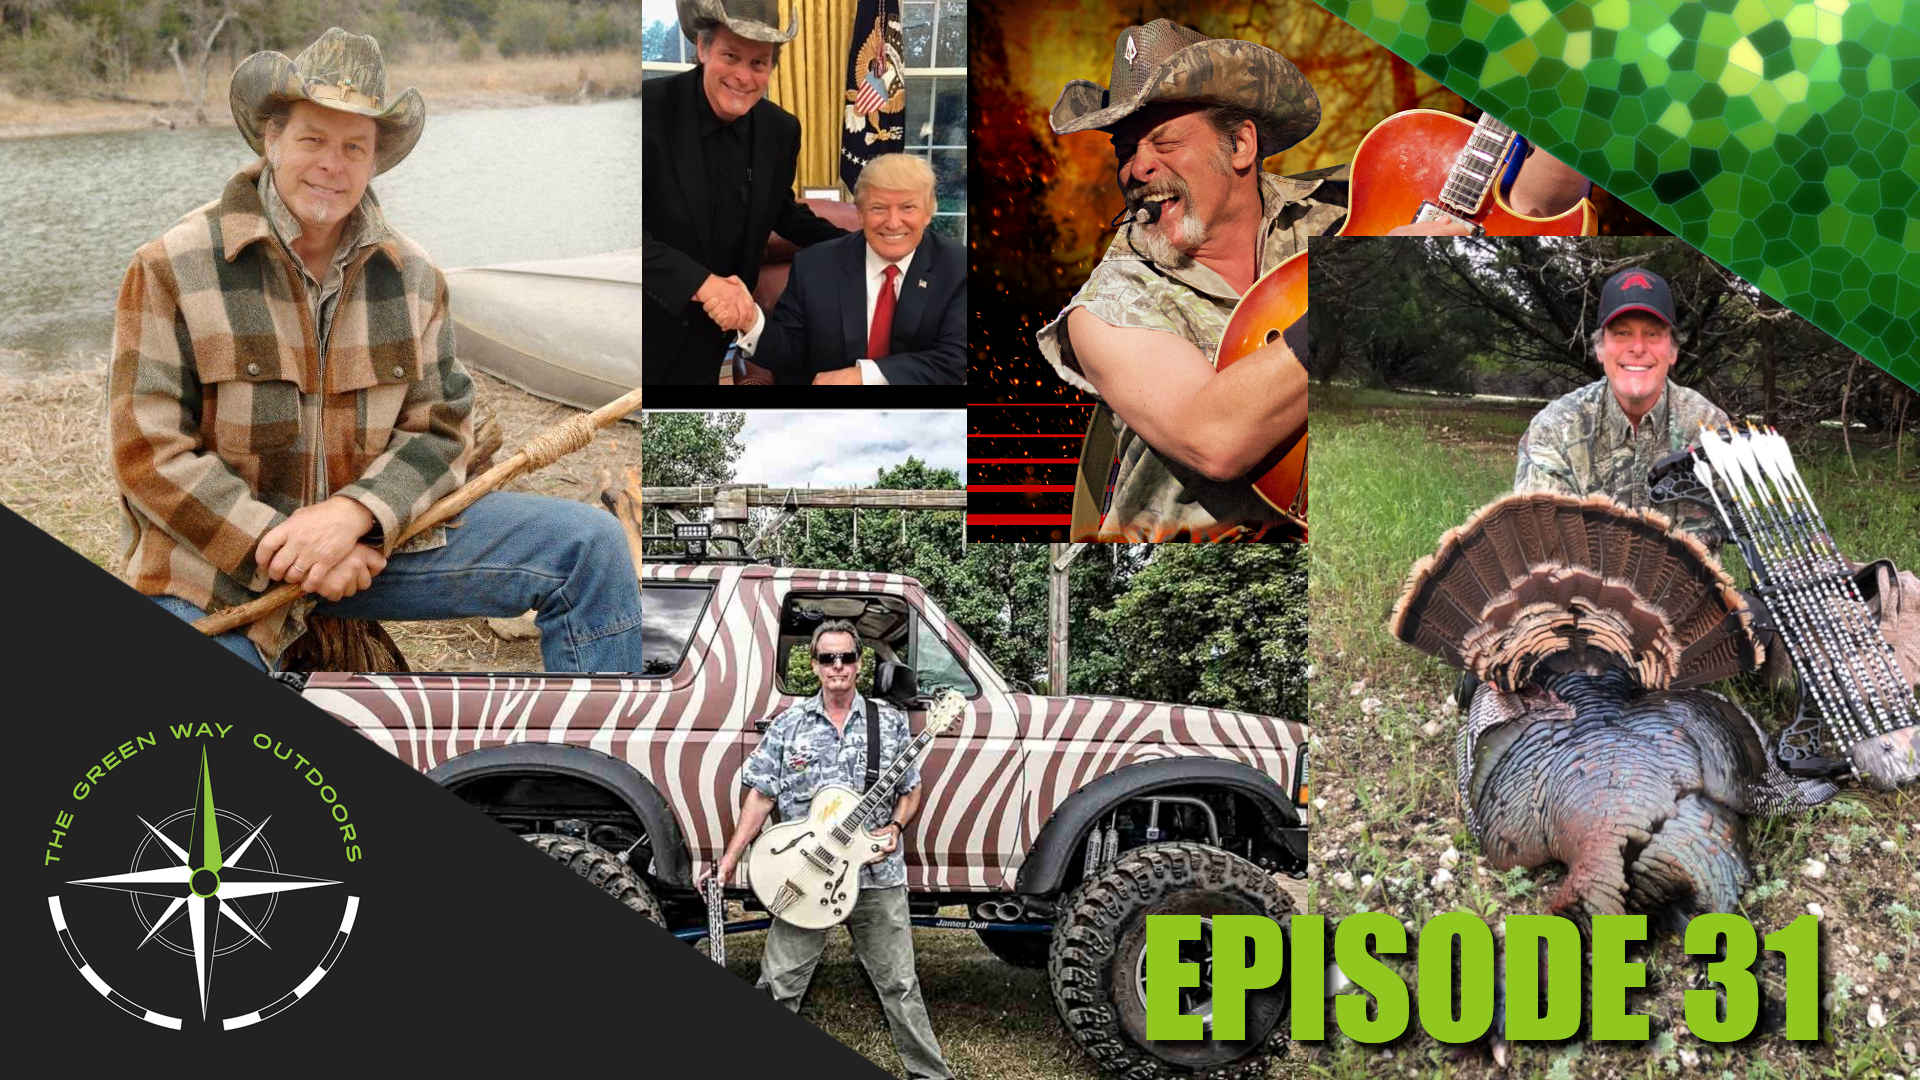 The Green Way Outdoors -Ted Nugent - Episode 31